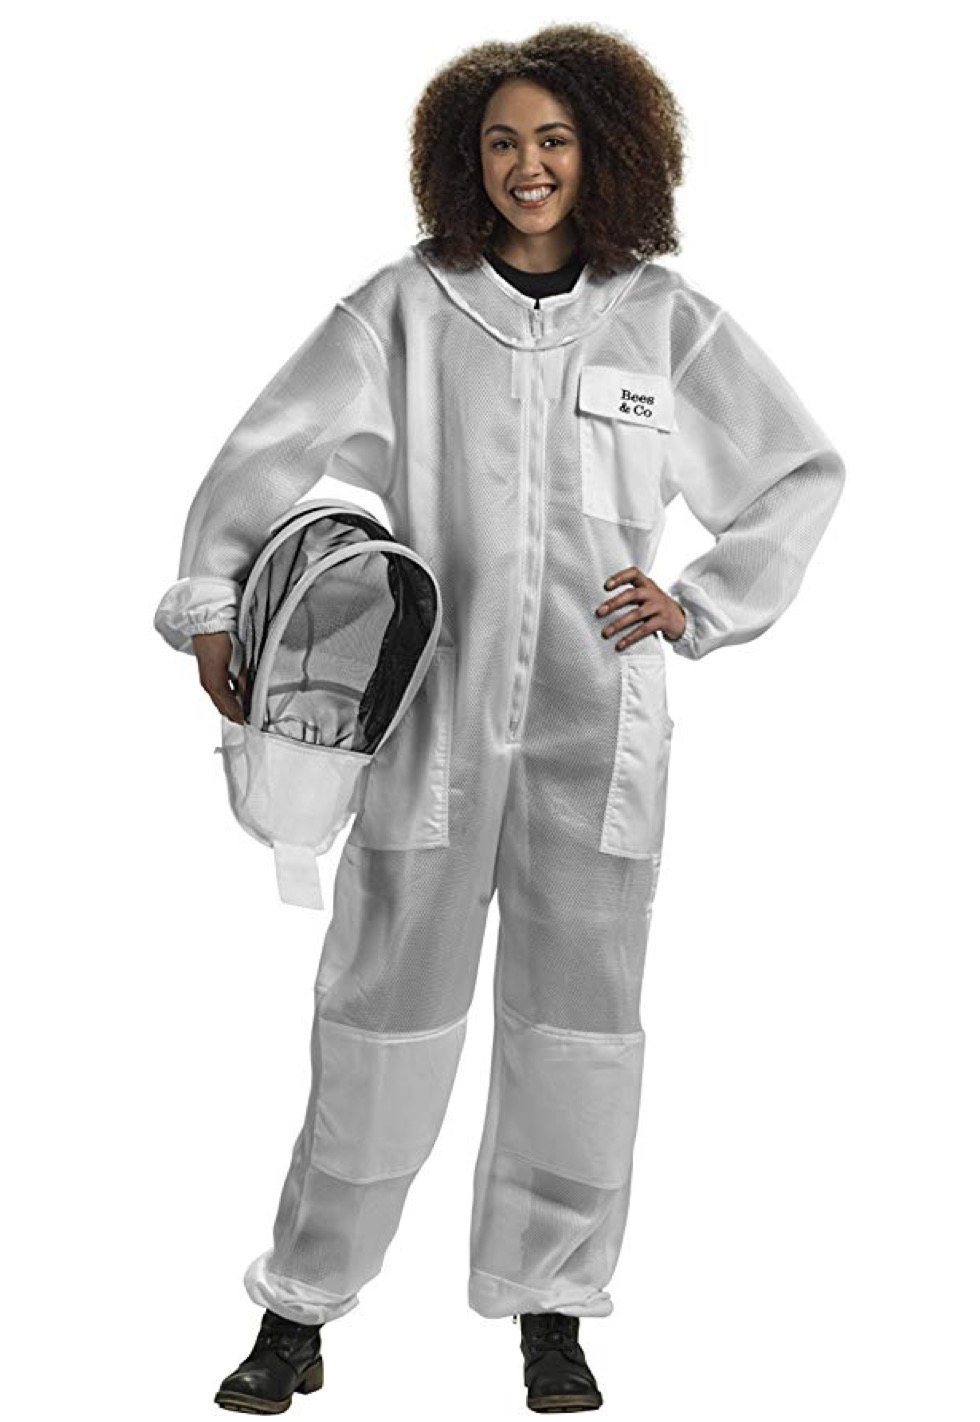 Bees & Co U84 Ultralight Beekeeper Suit